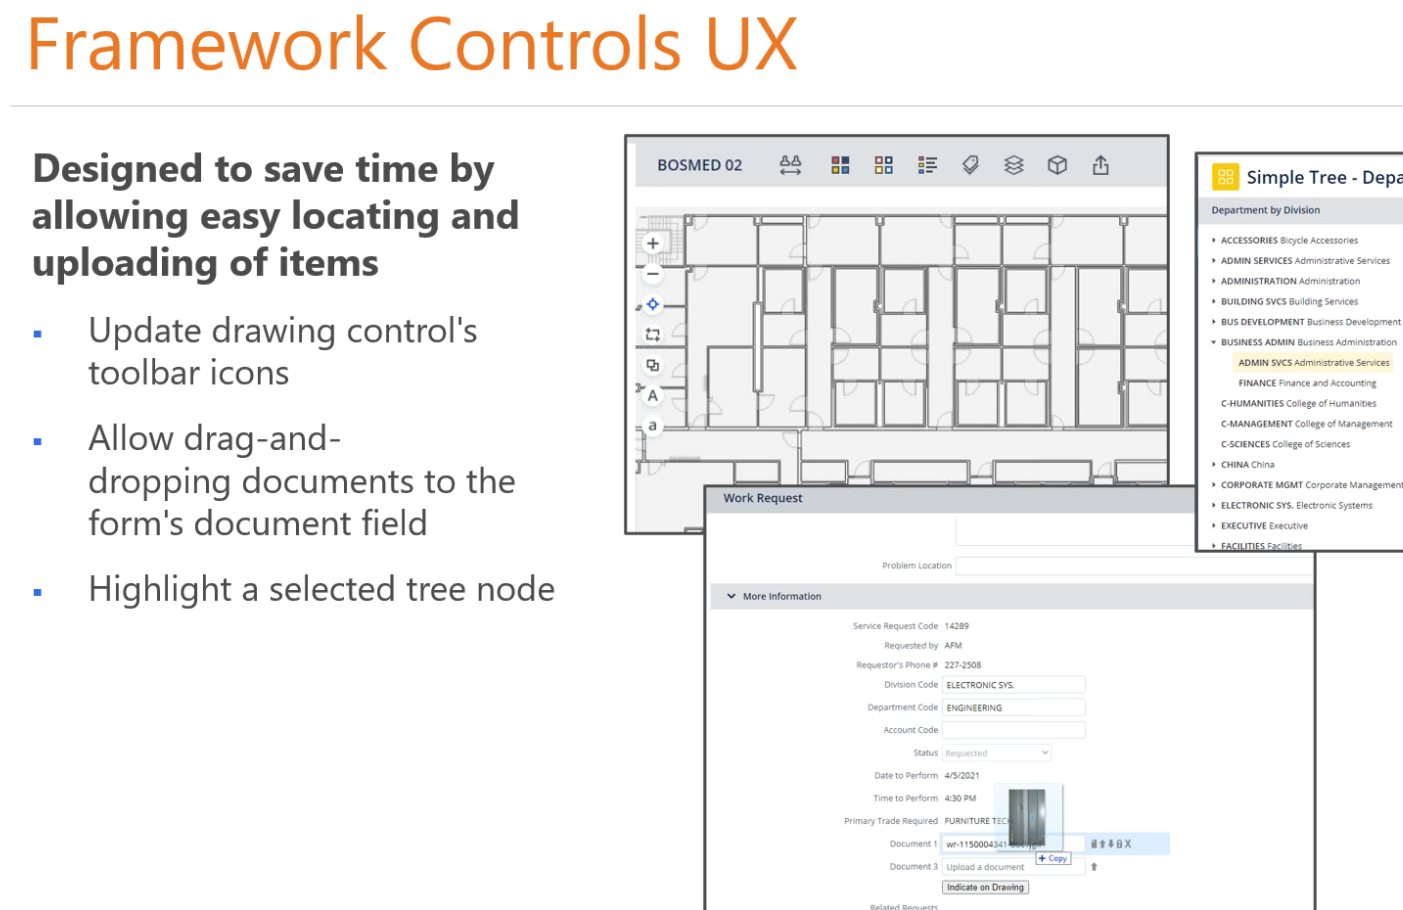 """Machine generated alternative text: Framework Controls UX  Designed to save time by  allowing easy locating and  uploading of items  Update drawing control's  toolbar icons  Allow drag-and-  dropping documents to the  form's document field  Highlight a selected tree node  BOSMED 02  Work Request  More Information  Simple Tree - Depe  Department by Division  ACCESSORIES Accessories  • ADMN S E RV'CES Adm  • ADMINISTRATION Administration  • eun01NG svcs  Bus DEVELOPMENT Business  • WSMSS  ADM N SVCS Ad m  Finance  c-HUMANITIES college Humanities  C.MANAGEMENT College Management  of sciences  • CORPORATE """"GMT Ma  ELECTRONIC sys. Electron* systems  • EXECUTIVE Executive  Problem on  • 227.298  ELECTRONIC  ENGINEERING  oate 44-2021  to m  FURNITURE T"""